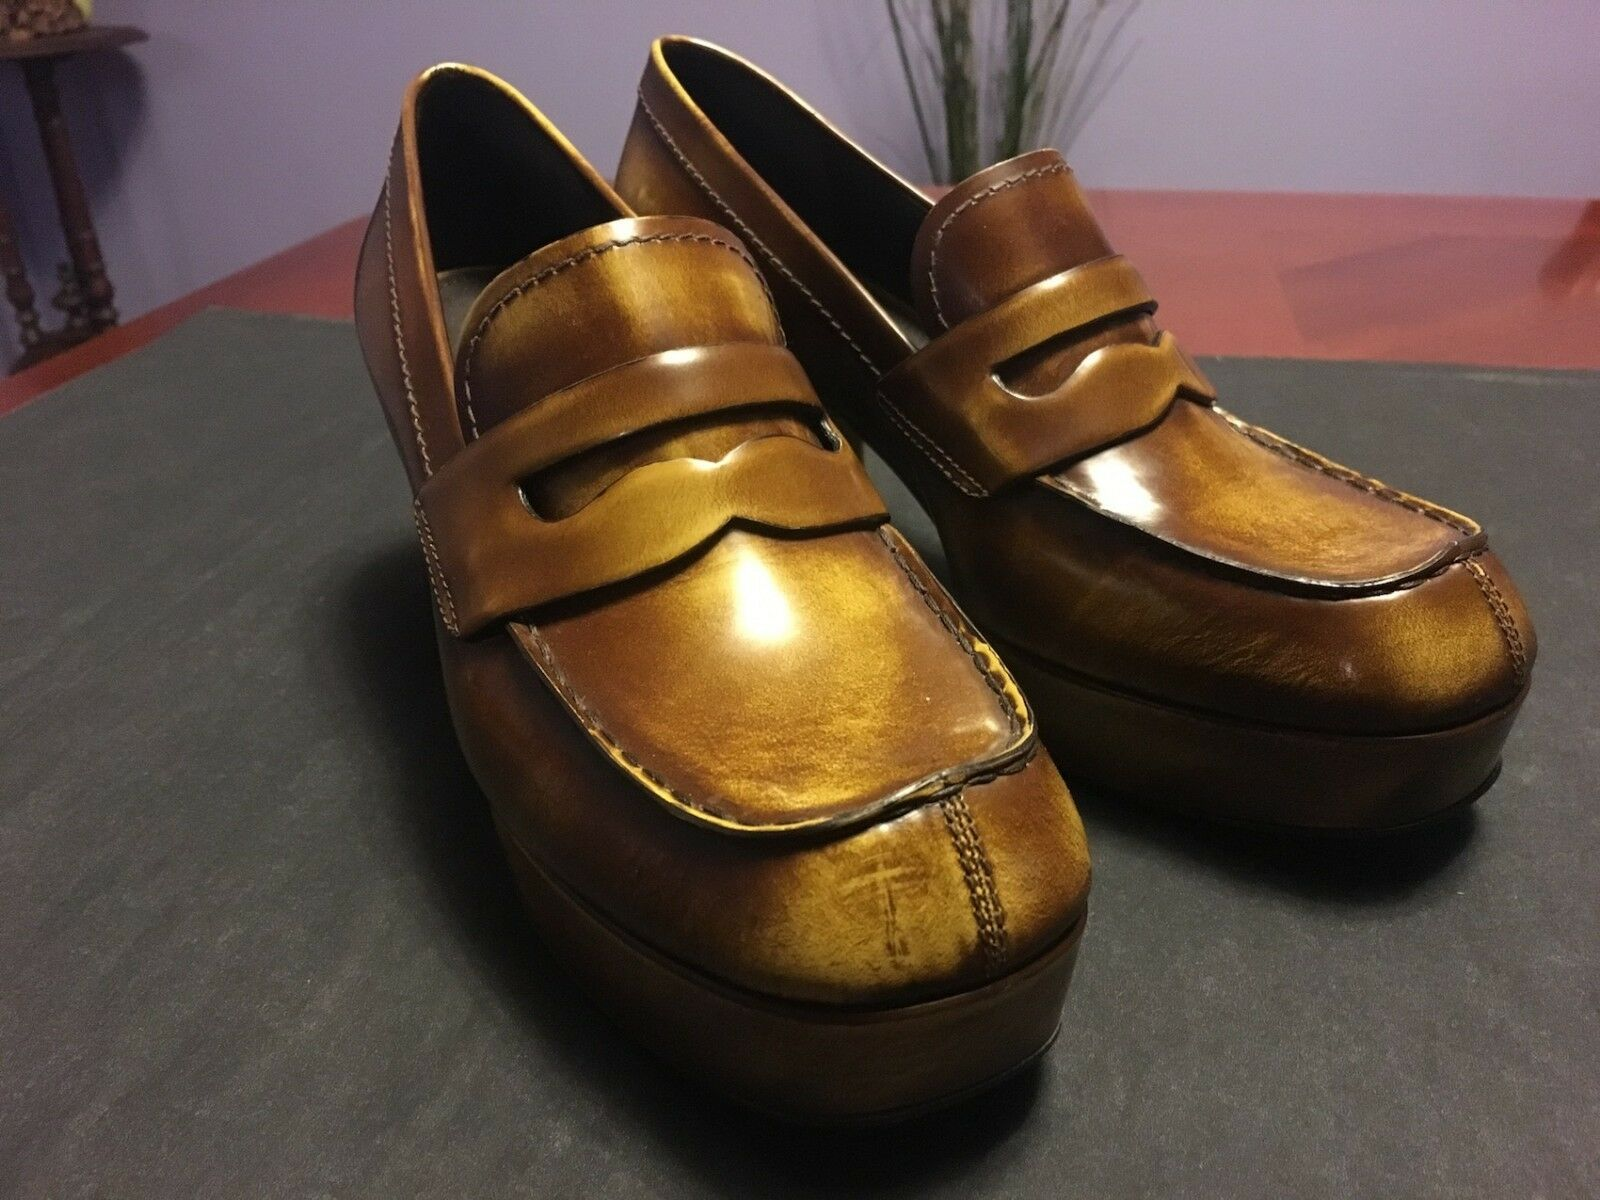 PRADA Block Heeled Penny Loafers in braun Burnished Leather, IT40